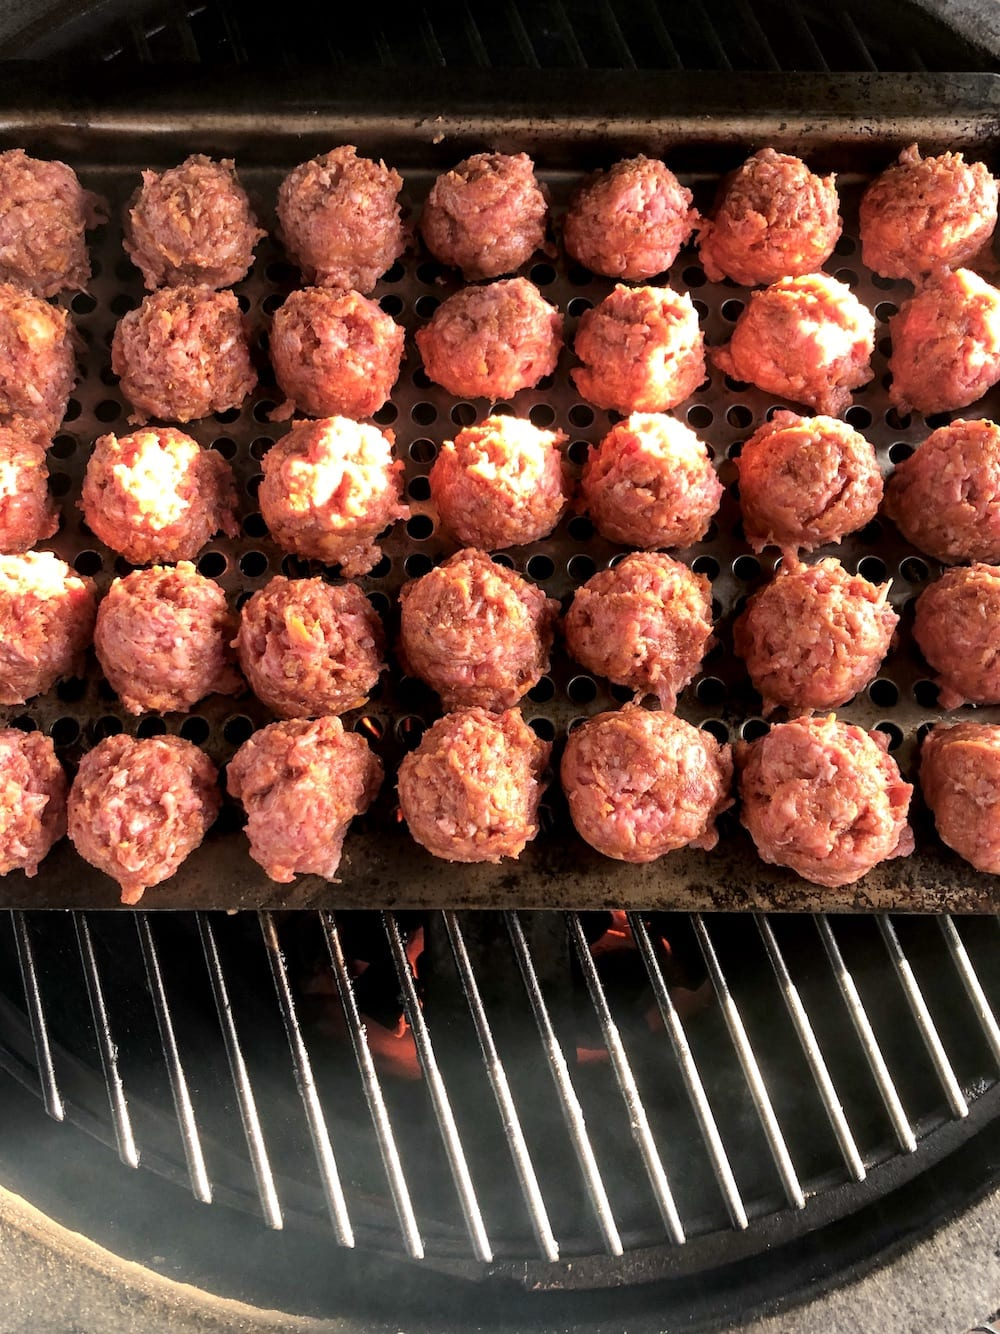 meatballs on a grill